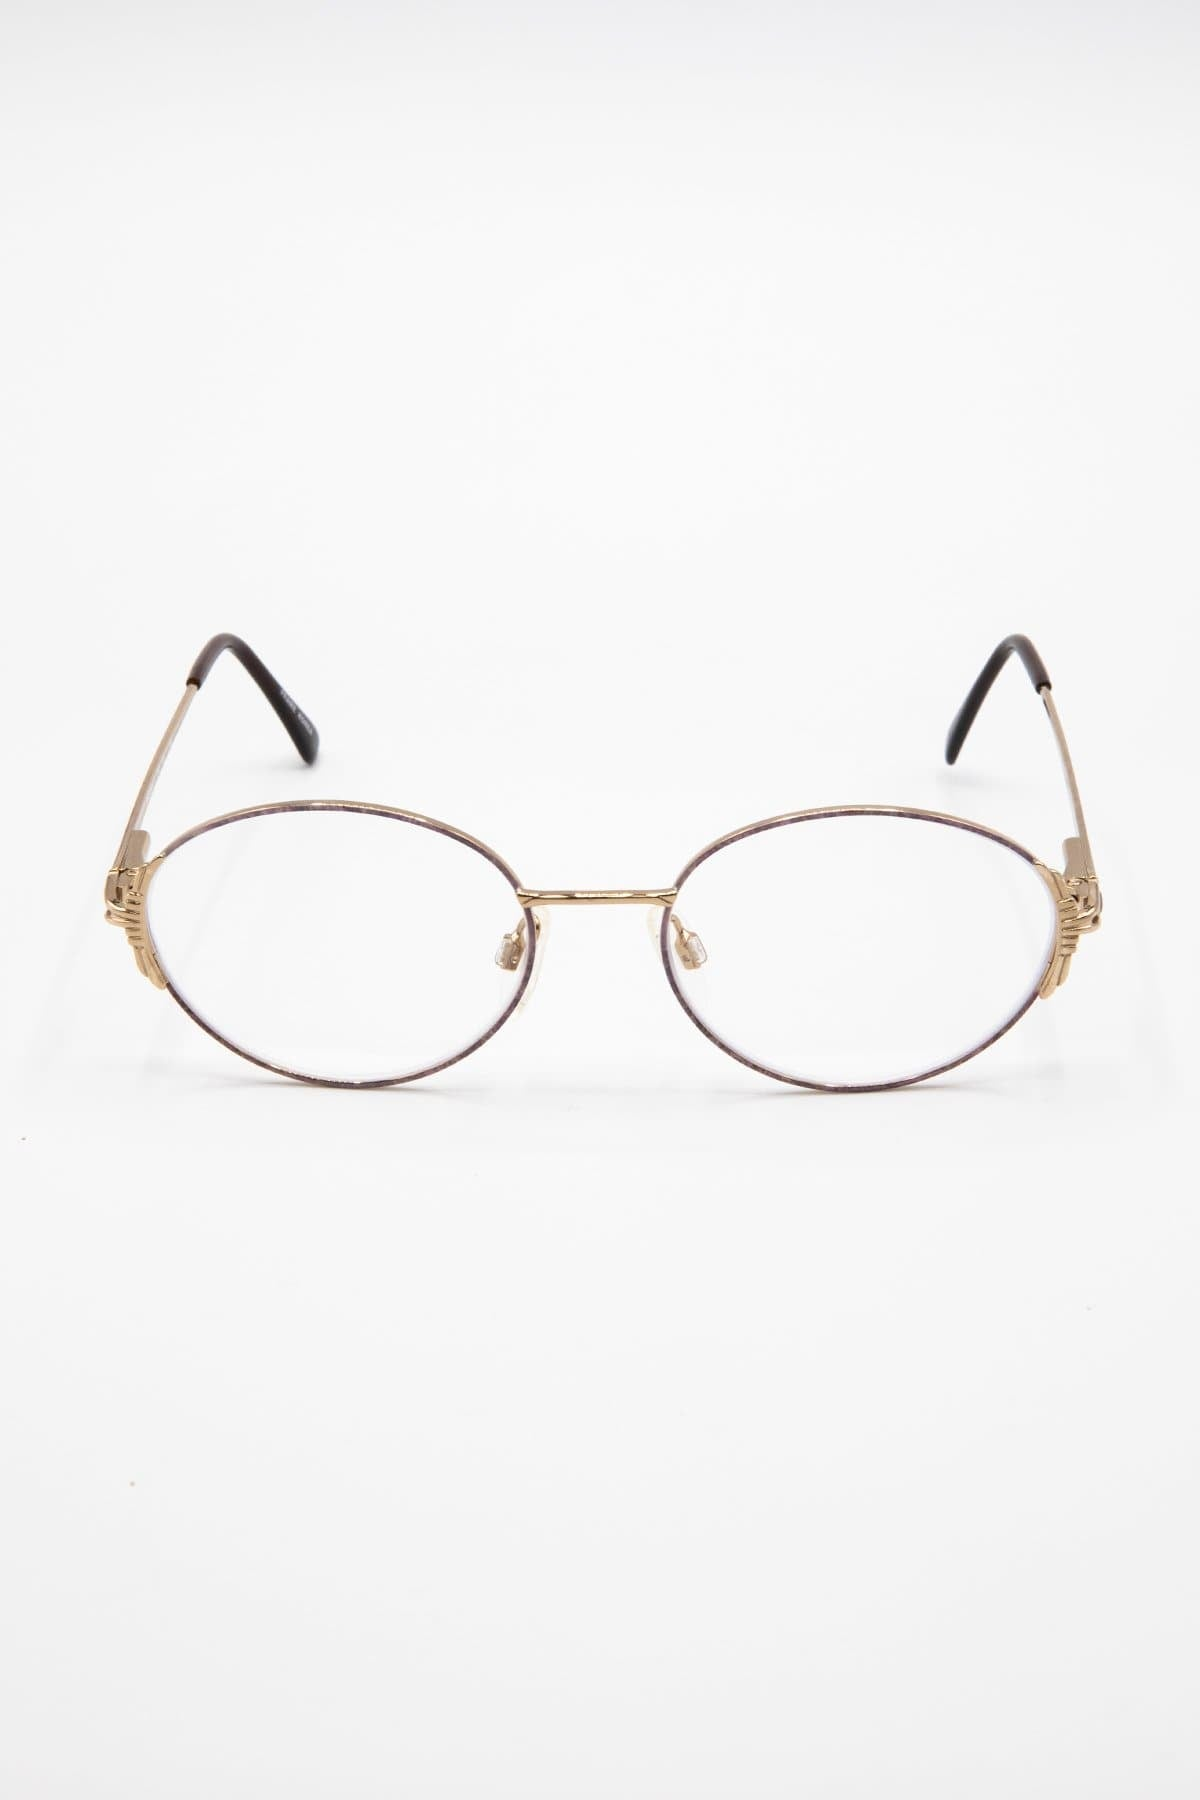 EGANNIE - Annie Mauve Glasses